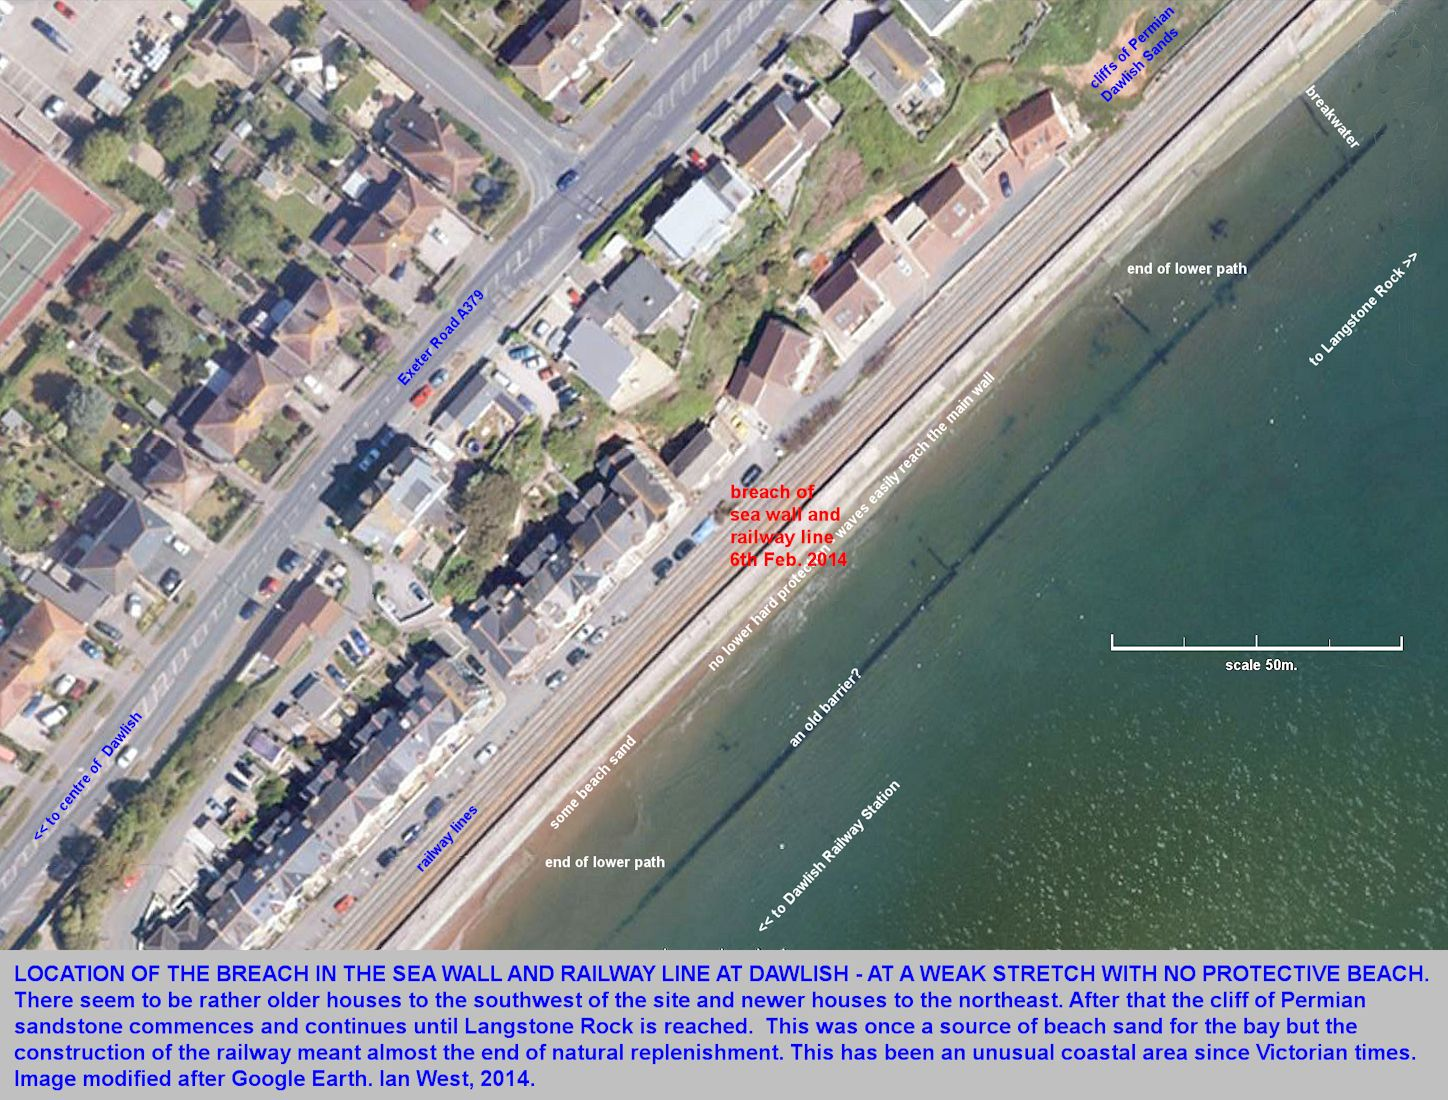 A large-scale aerial view of the location of the breach in the sea-wall and railway line at Dawlish,  Devon on the 6th February 2014